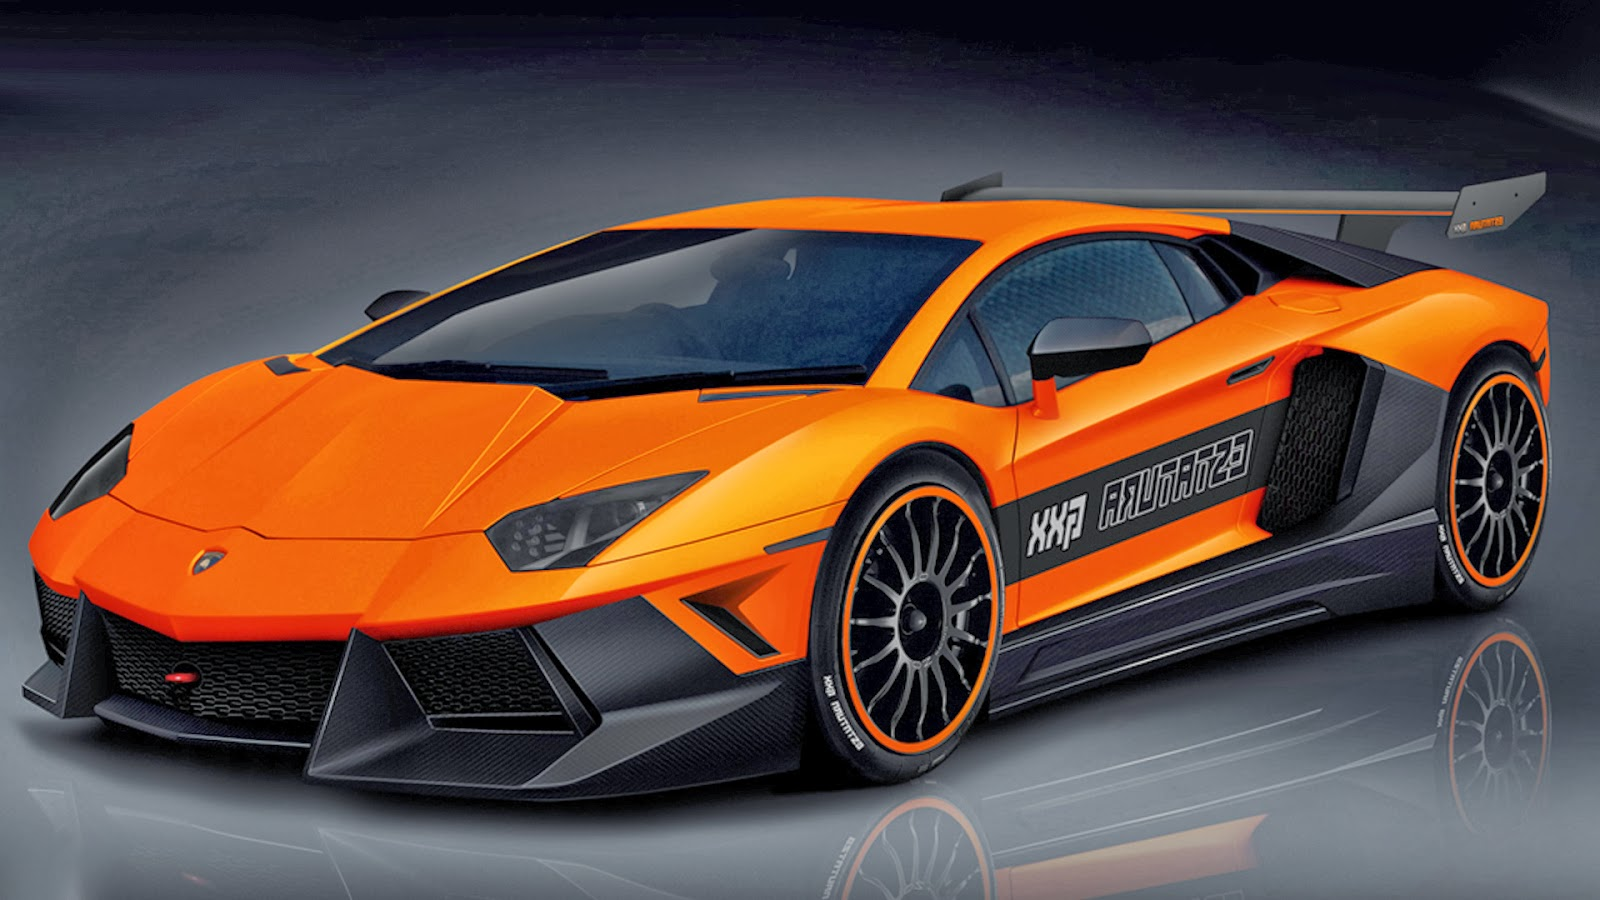 2013 lamborghini aventador roadster with Specifications And Price Lamborghini on Specifications And Price Lamborghini likewise 2019 Toyota Camry Interior as well Lamborghini Miura Wallpaper moreover Lamborghini Veneno Roadster 5 further 2019 2020 Lamborghini Aventador Svj Claimed To Have Exceptional Performance.